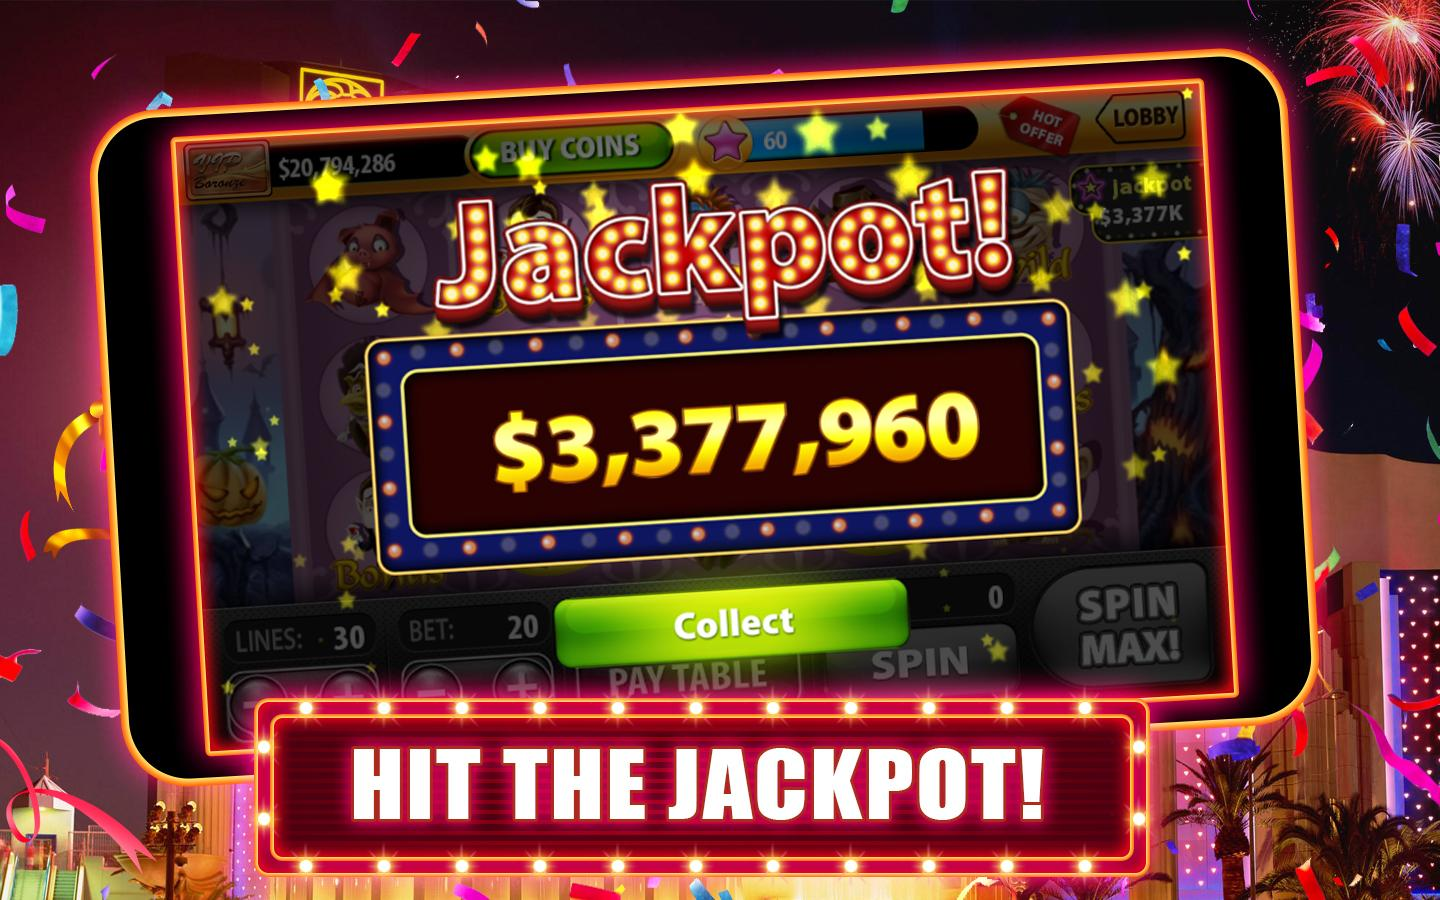 Top 5 Tricks To Win At Slot Machines